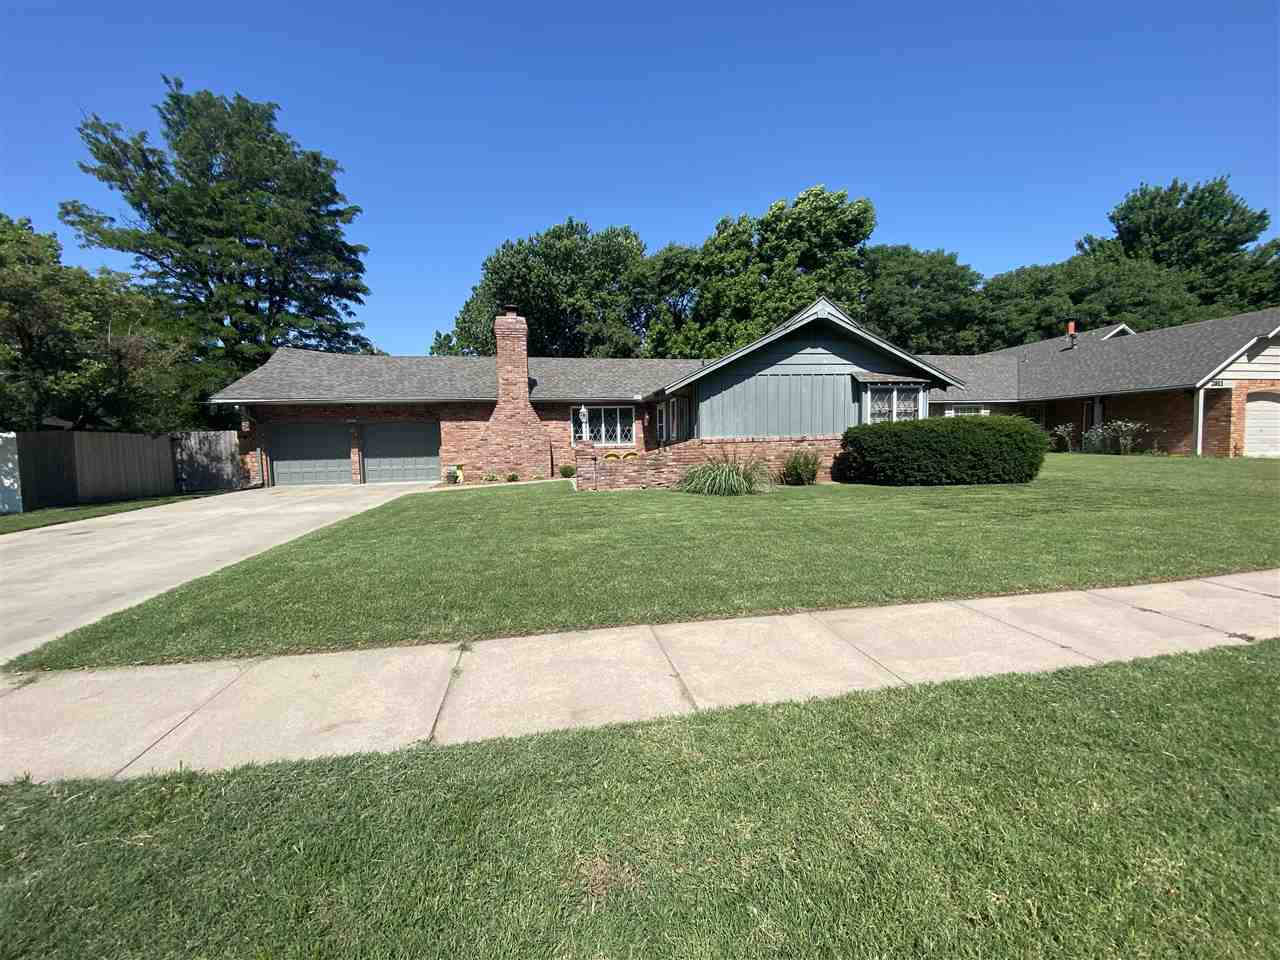 Adorable and spacious ranch home in the established Valley Park Addition with 3 bedroom, 2 1/2 baths